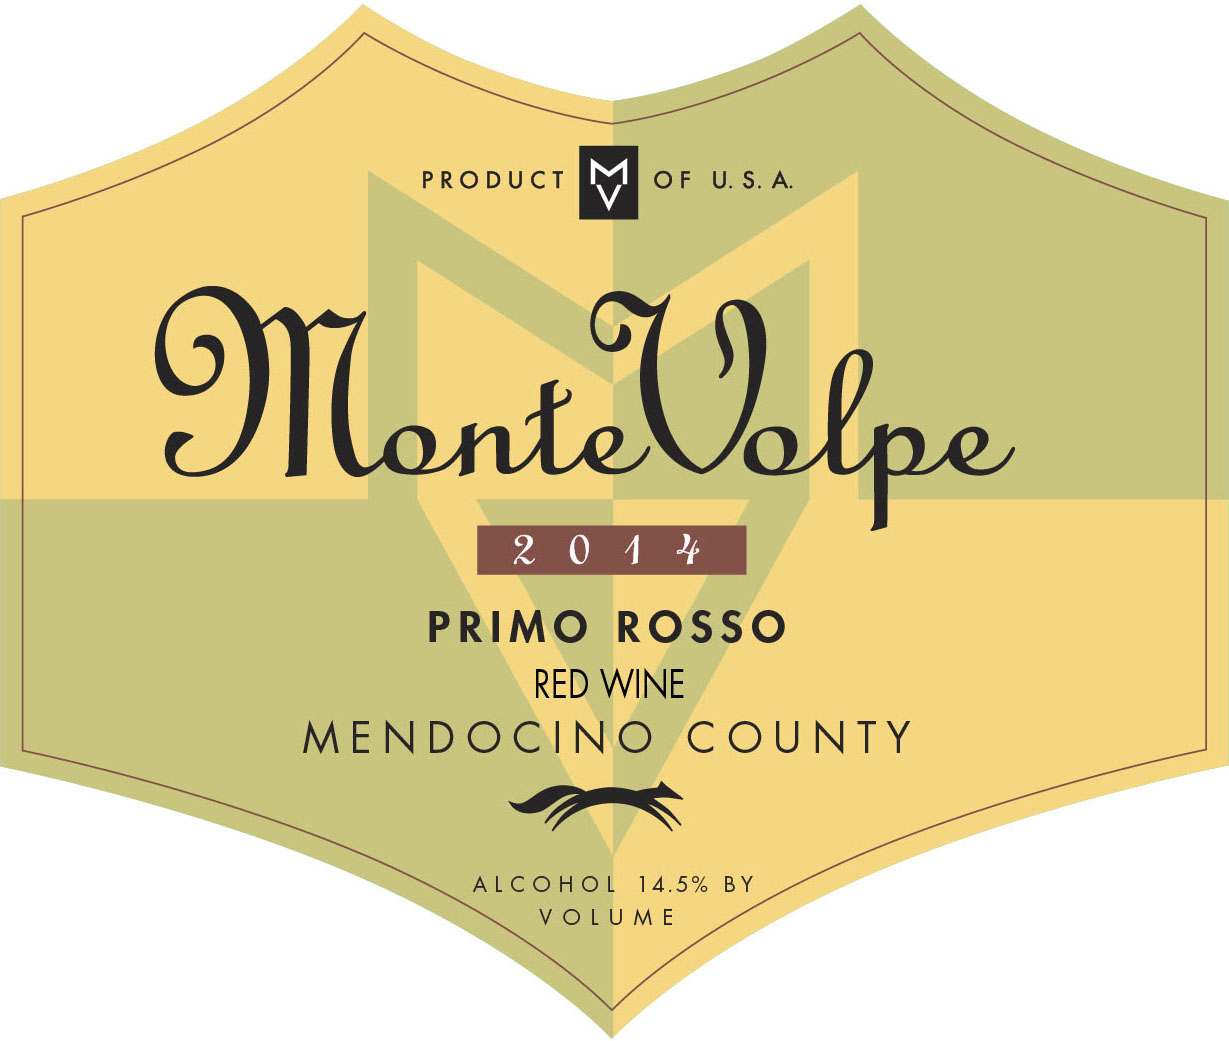 2014 Monte Volpe Primo Rosso THUMBNAIL